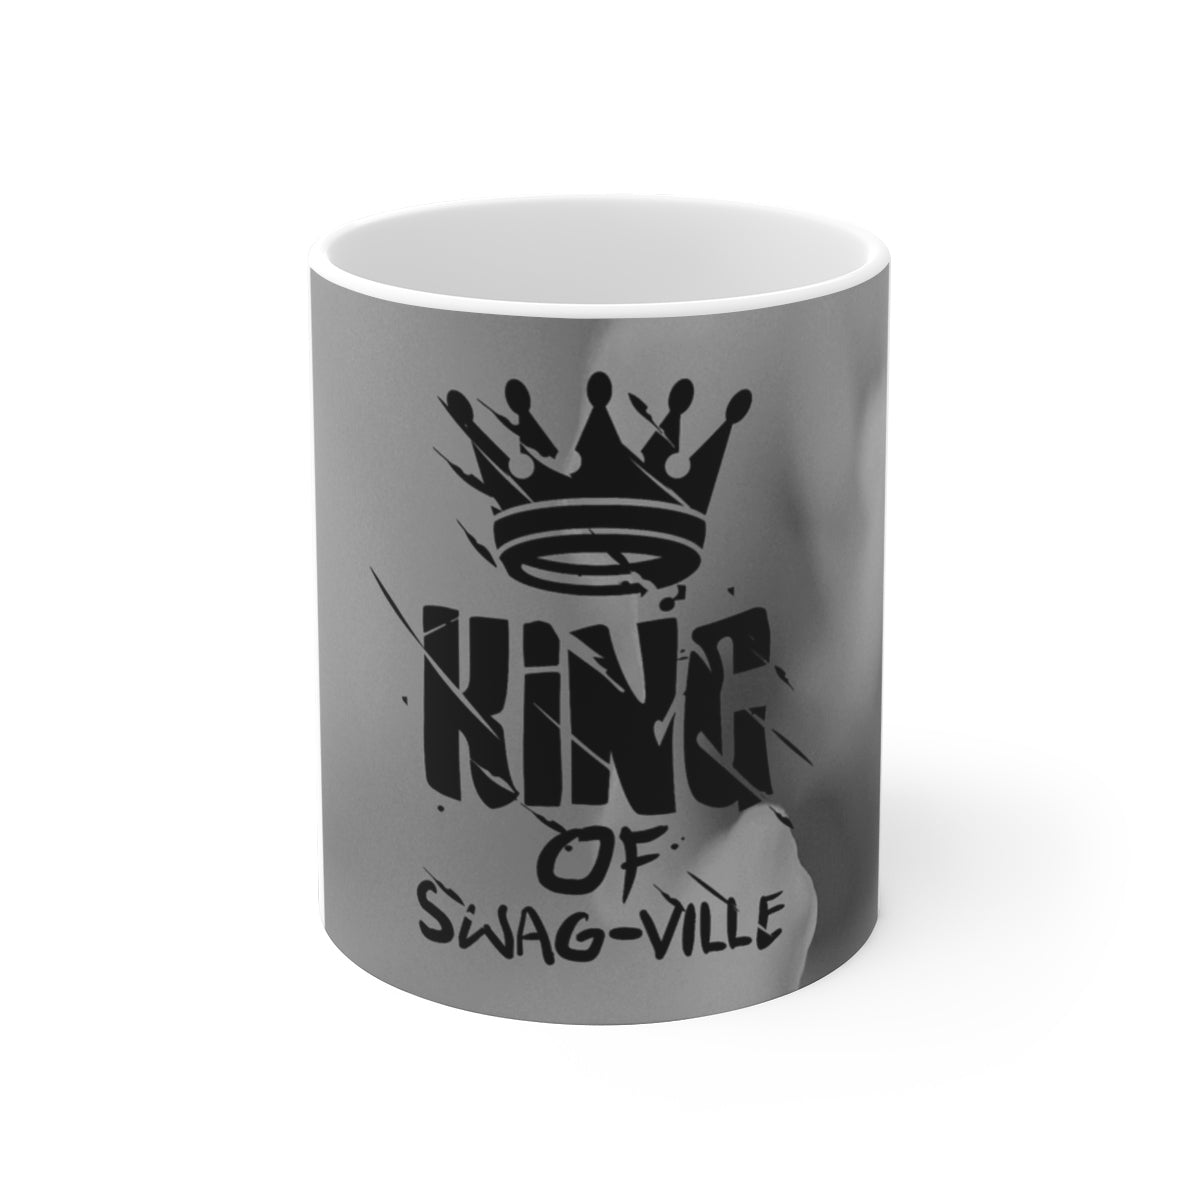 Sassy & Swag Collections - King of Swag-ville Gray Design White Ceramic Mug